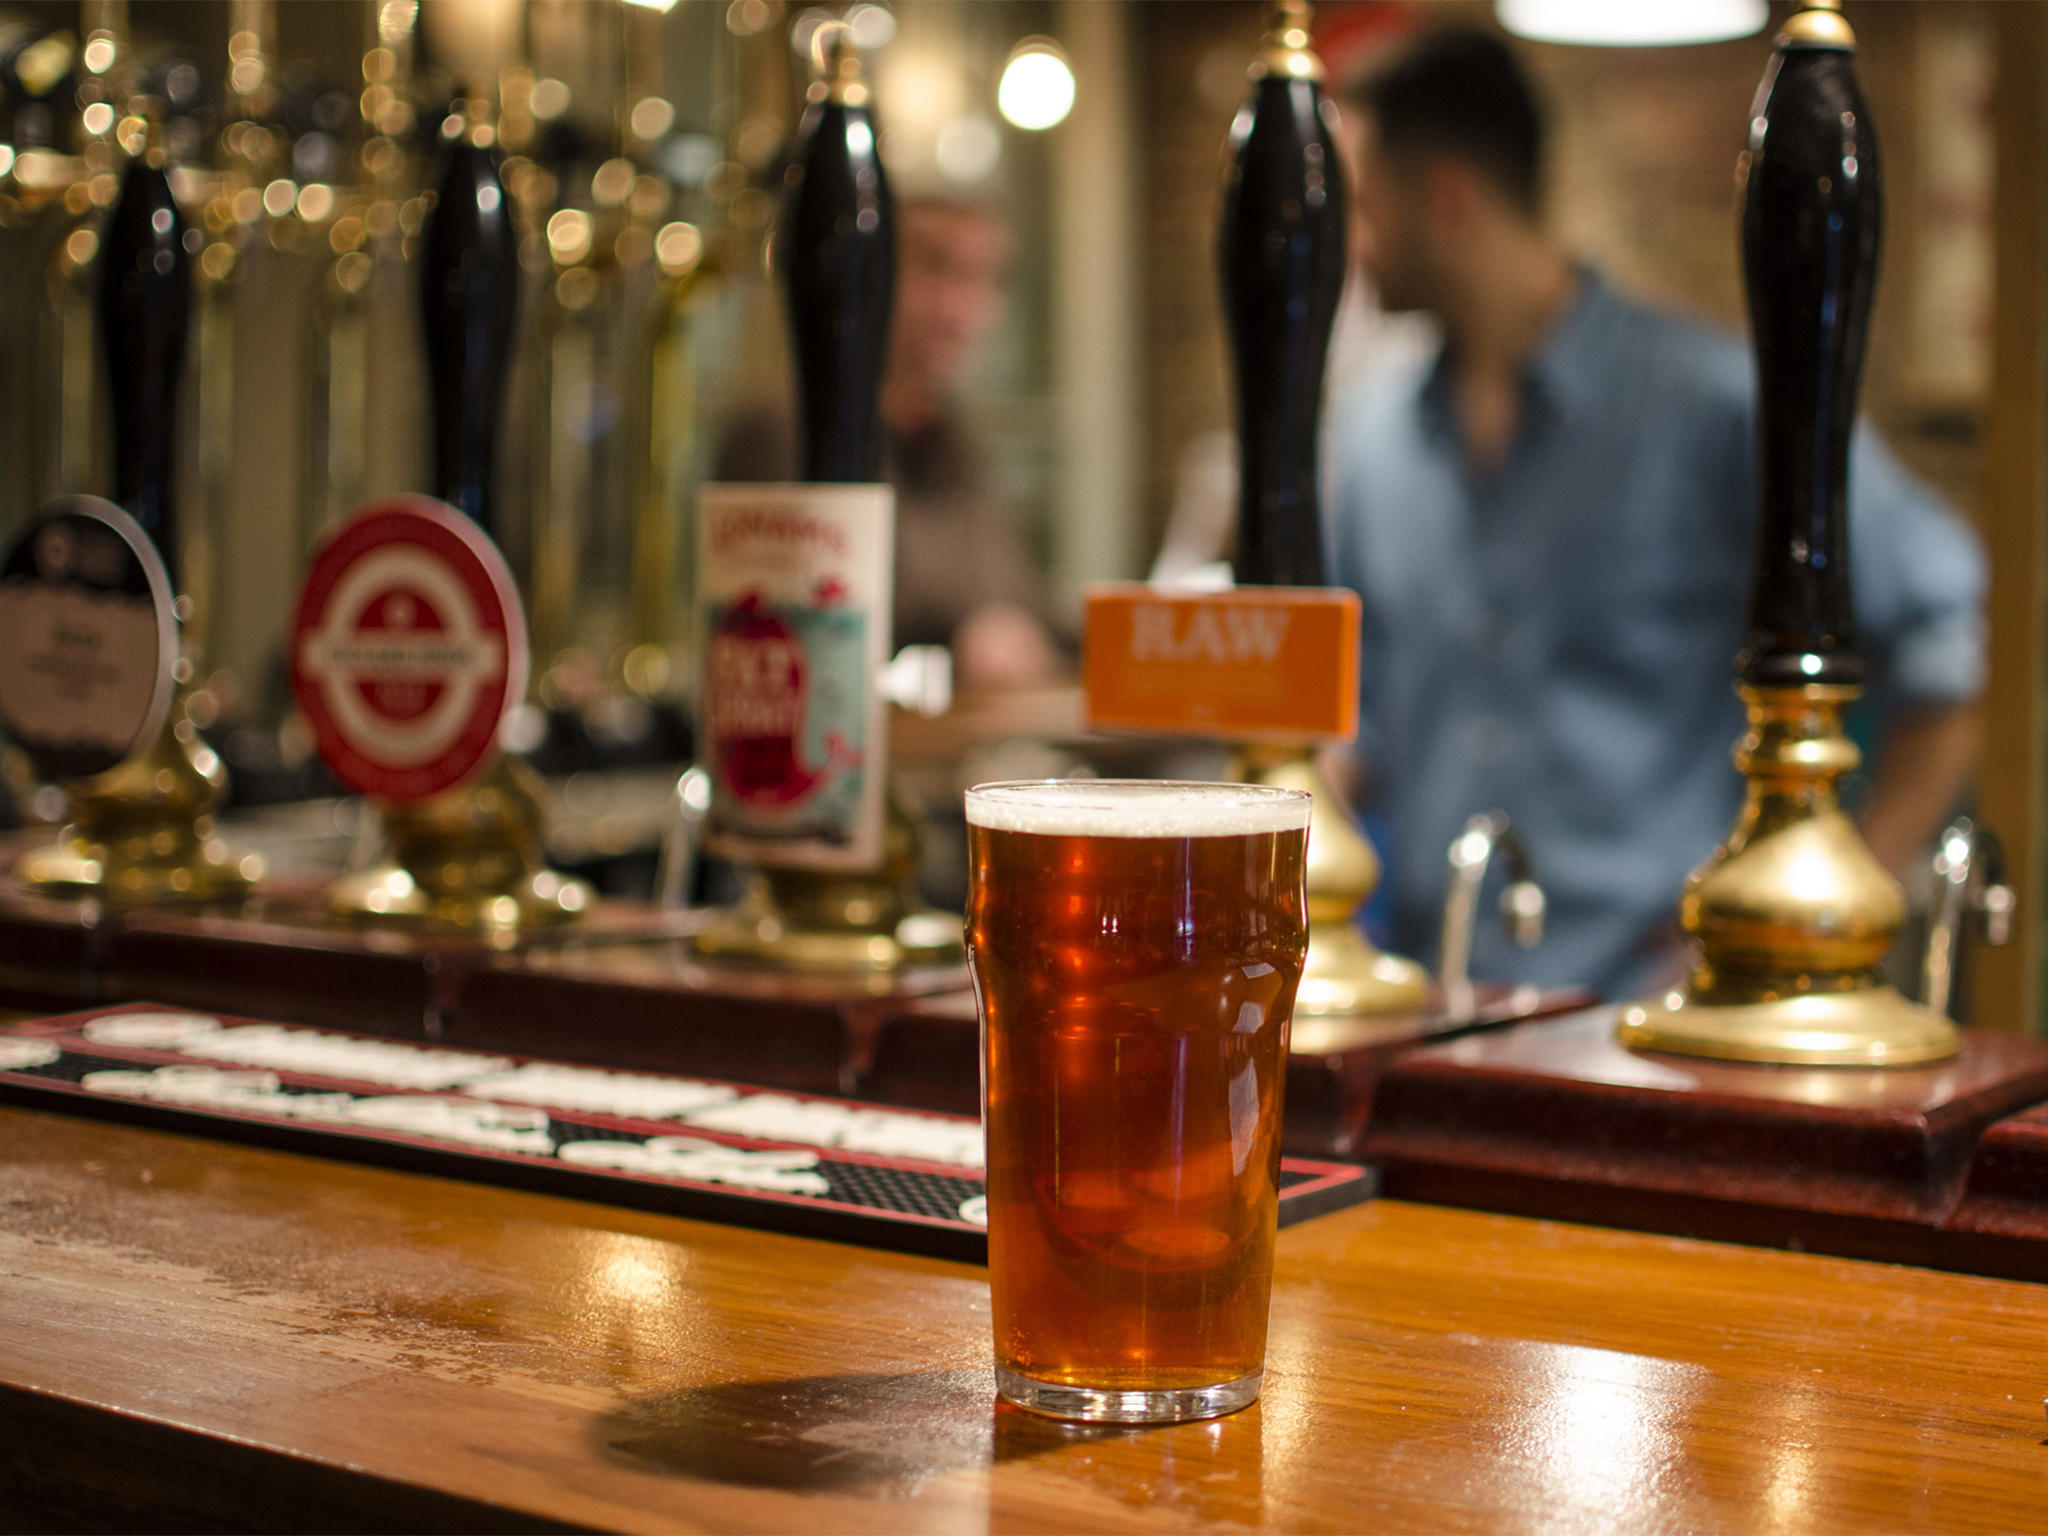 The best craft beer bars in London, Finsborough Arms